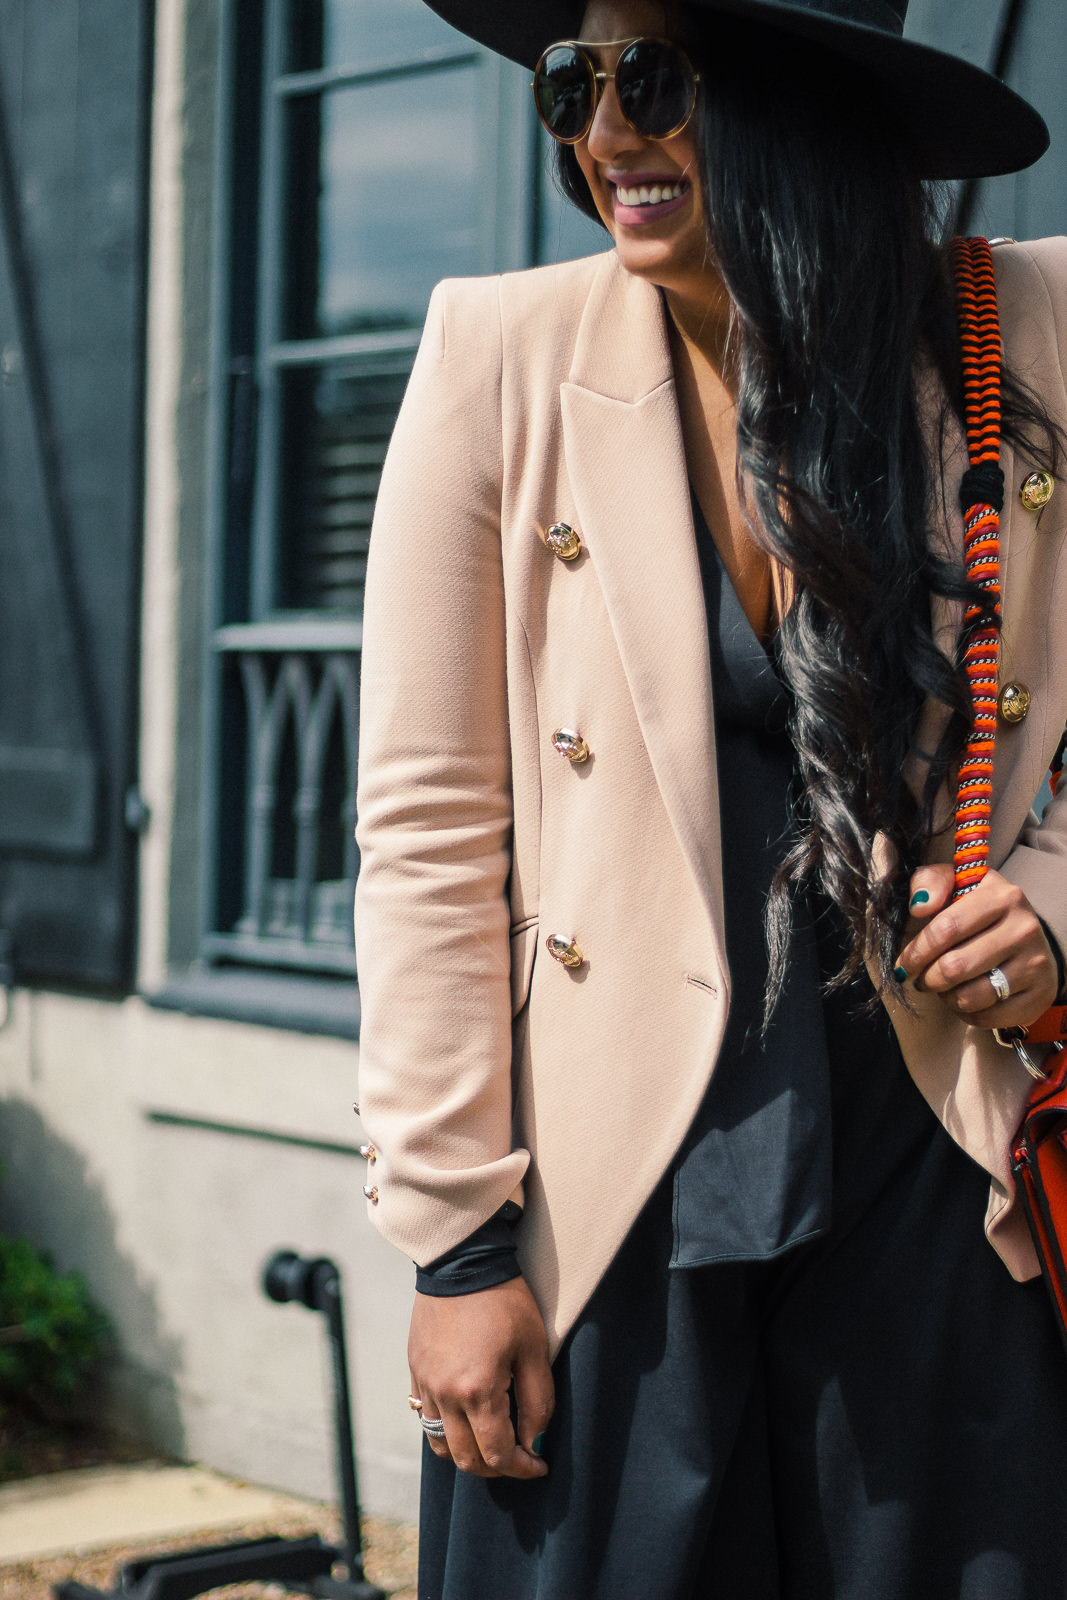 A Look For Less: Double-Breasted Blazer